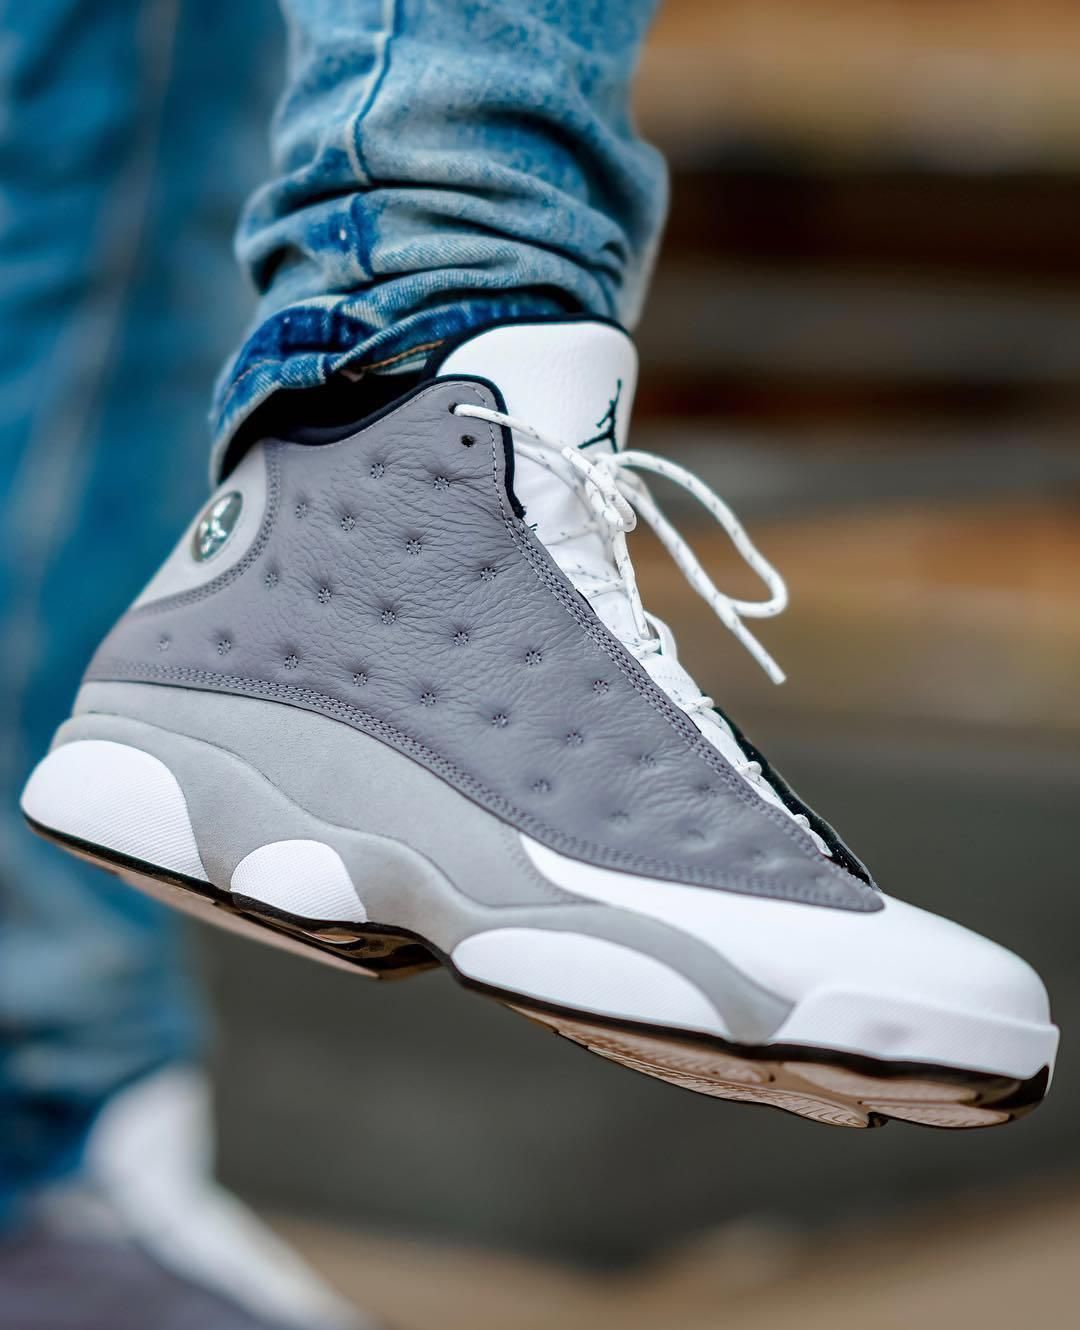 Limited pairs of the 'Atmosphere Grey